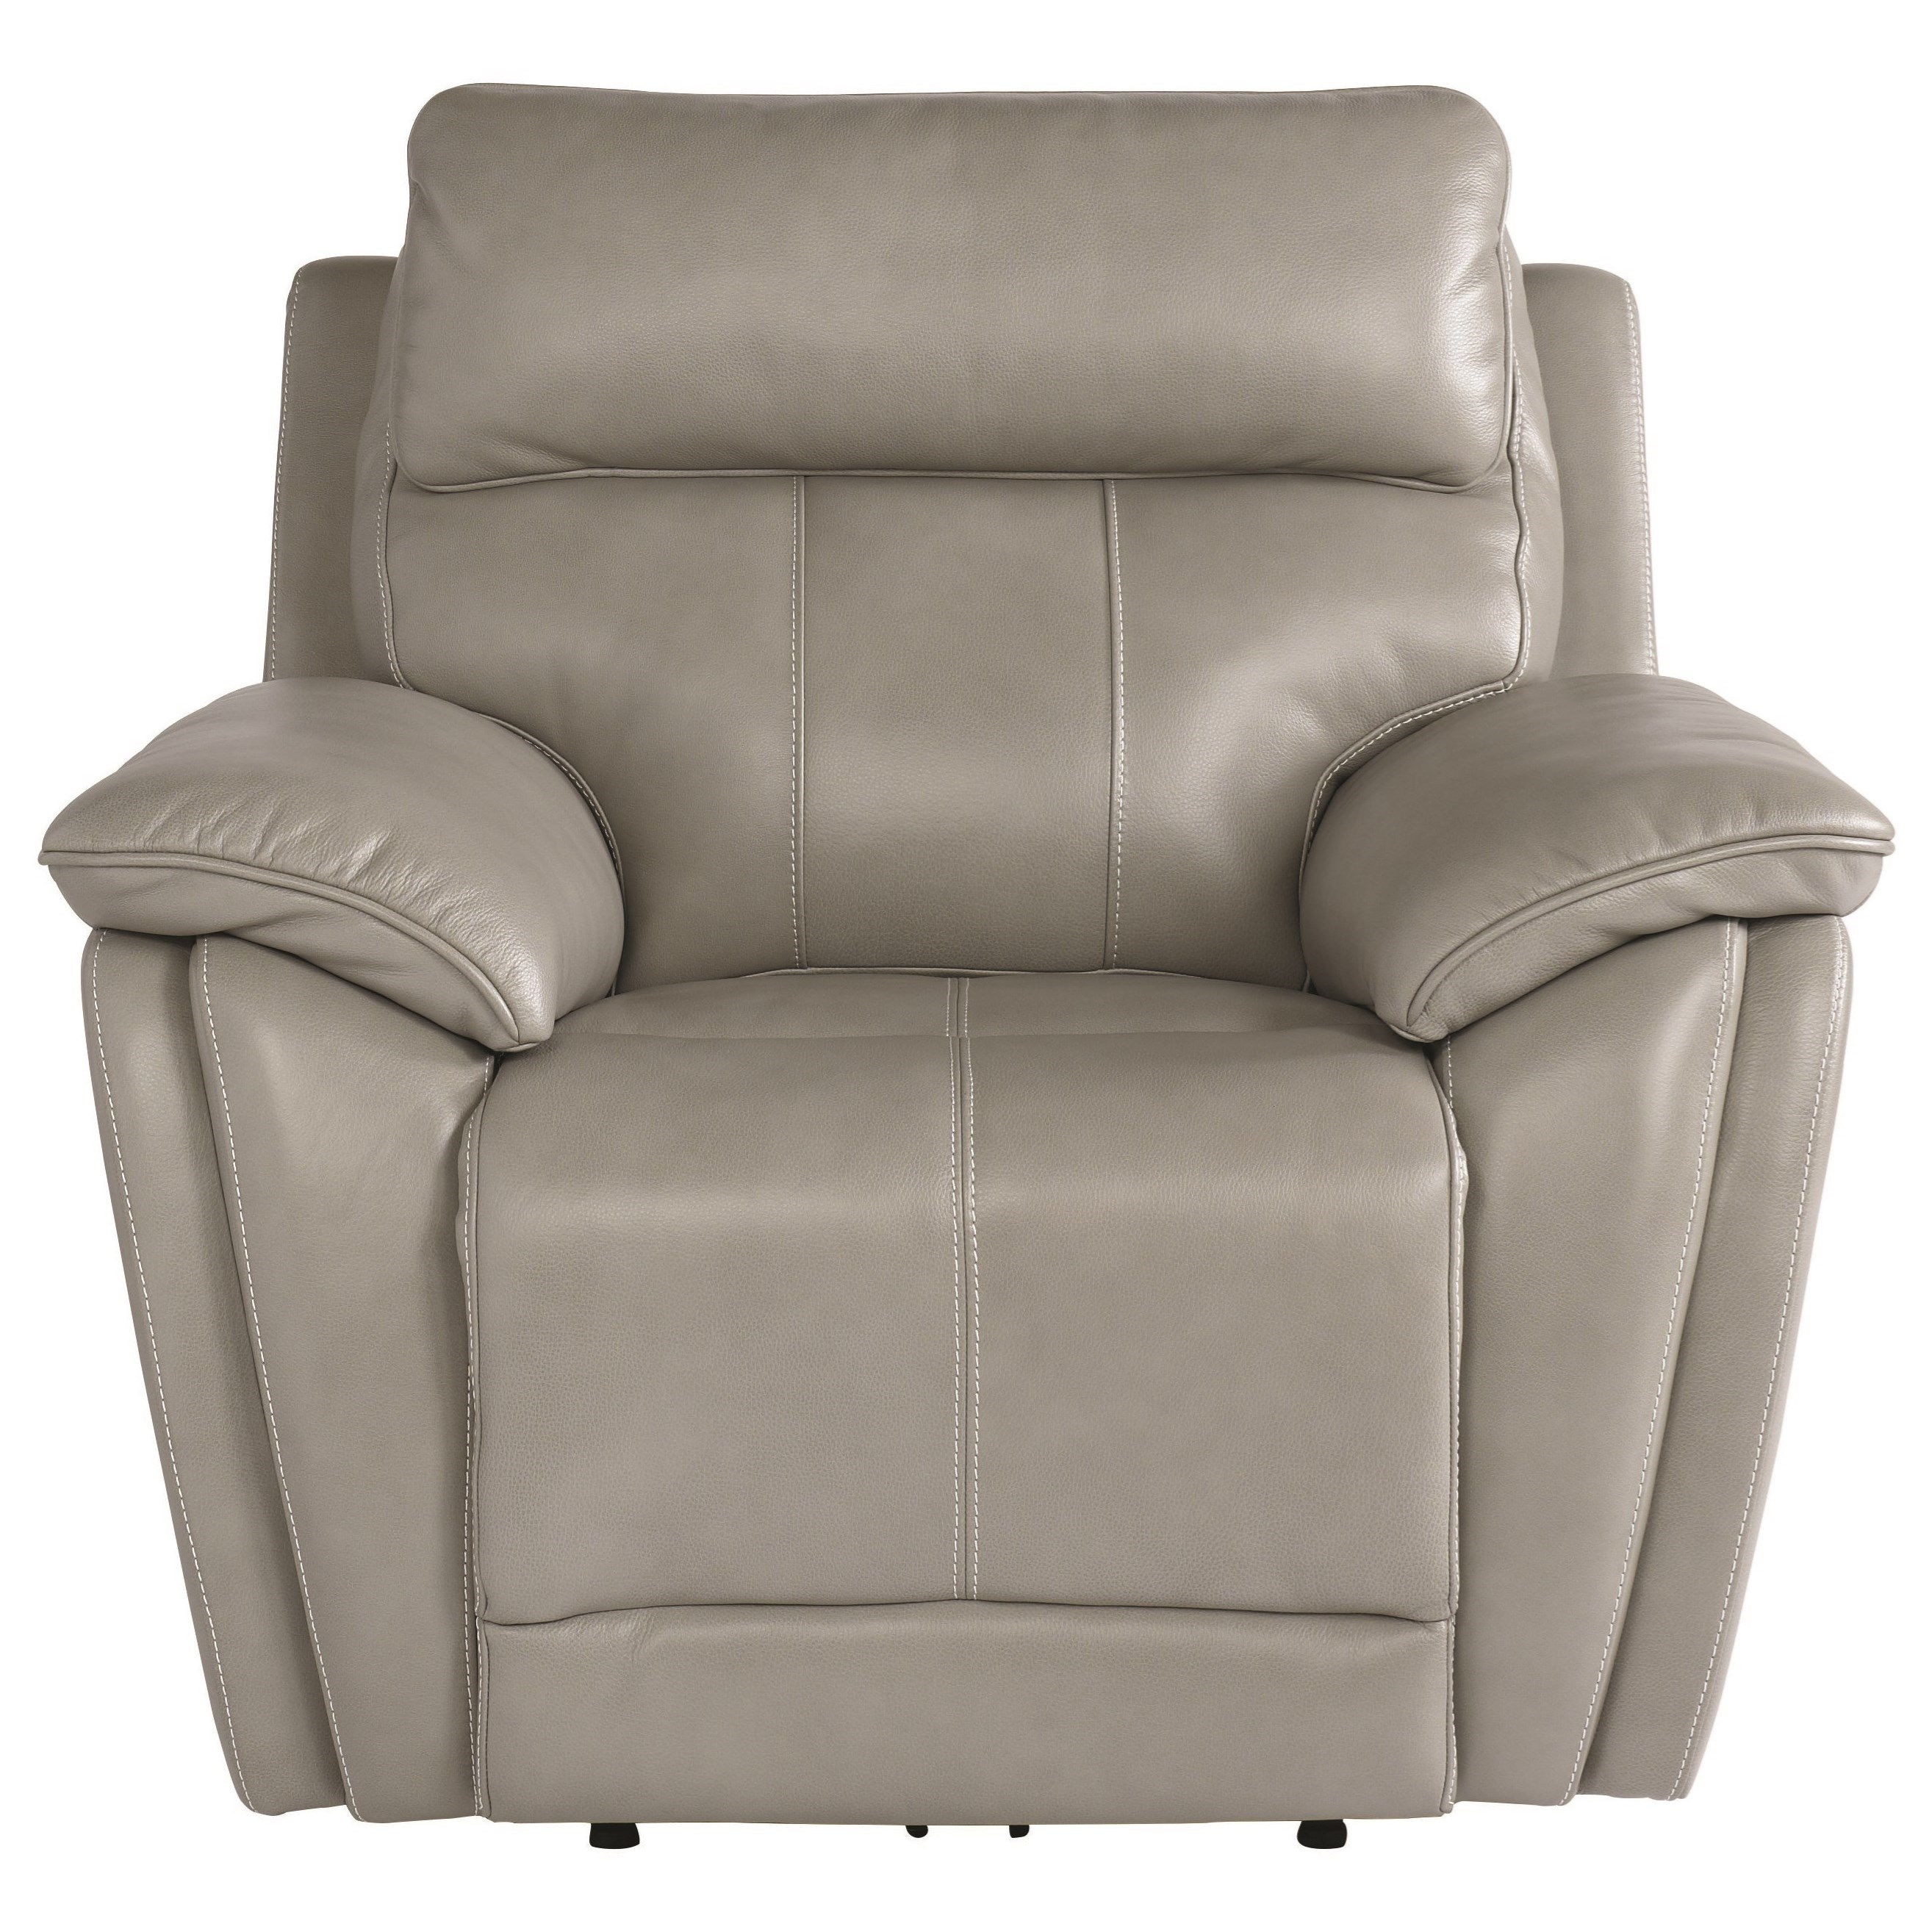 Club Level - Levitate Wallsaver Recliner by Bassett at Furniture Superstore - Rochester, MN